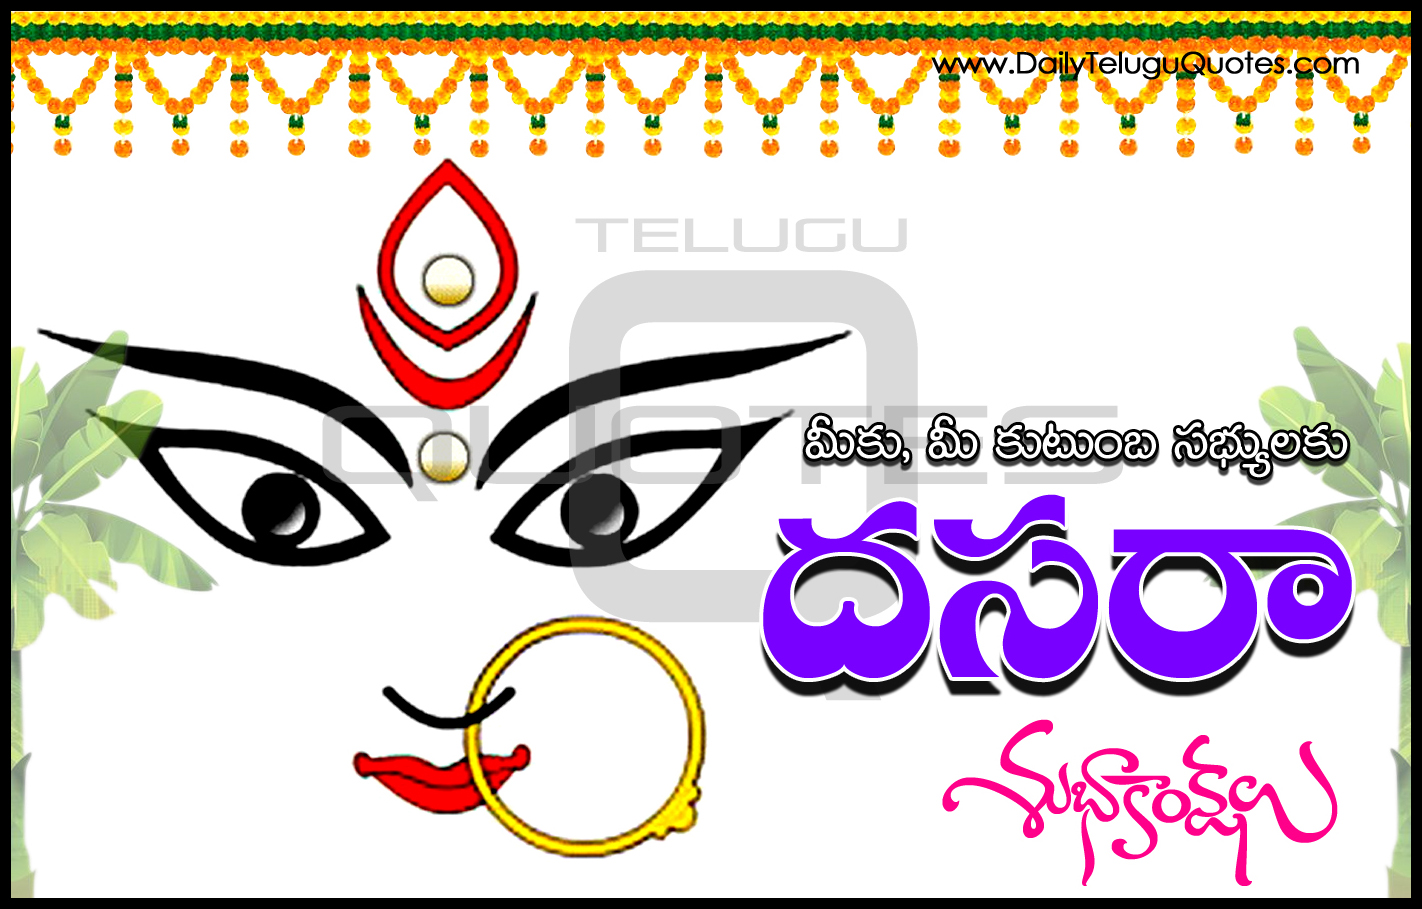 Happy dussehra images and wishes in telugu dailyteluguquotes here is a happy dussehra telugu greetingshappy dussehra quotes sms messages m4hsunfo